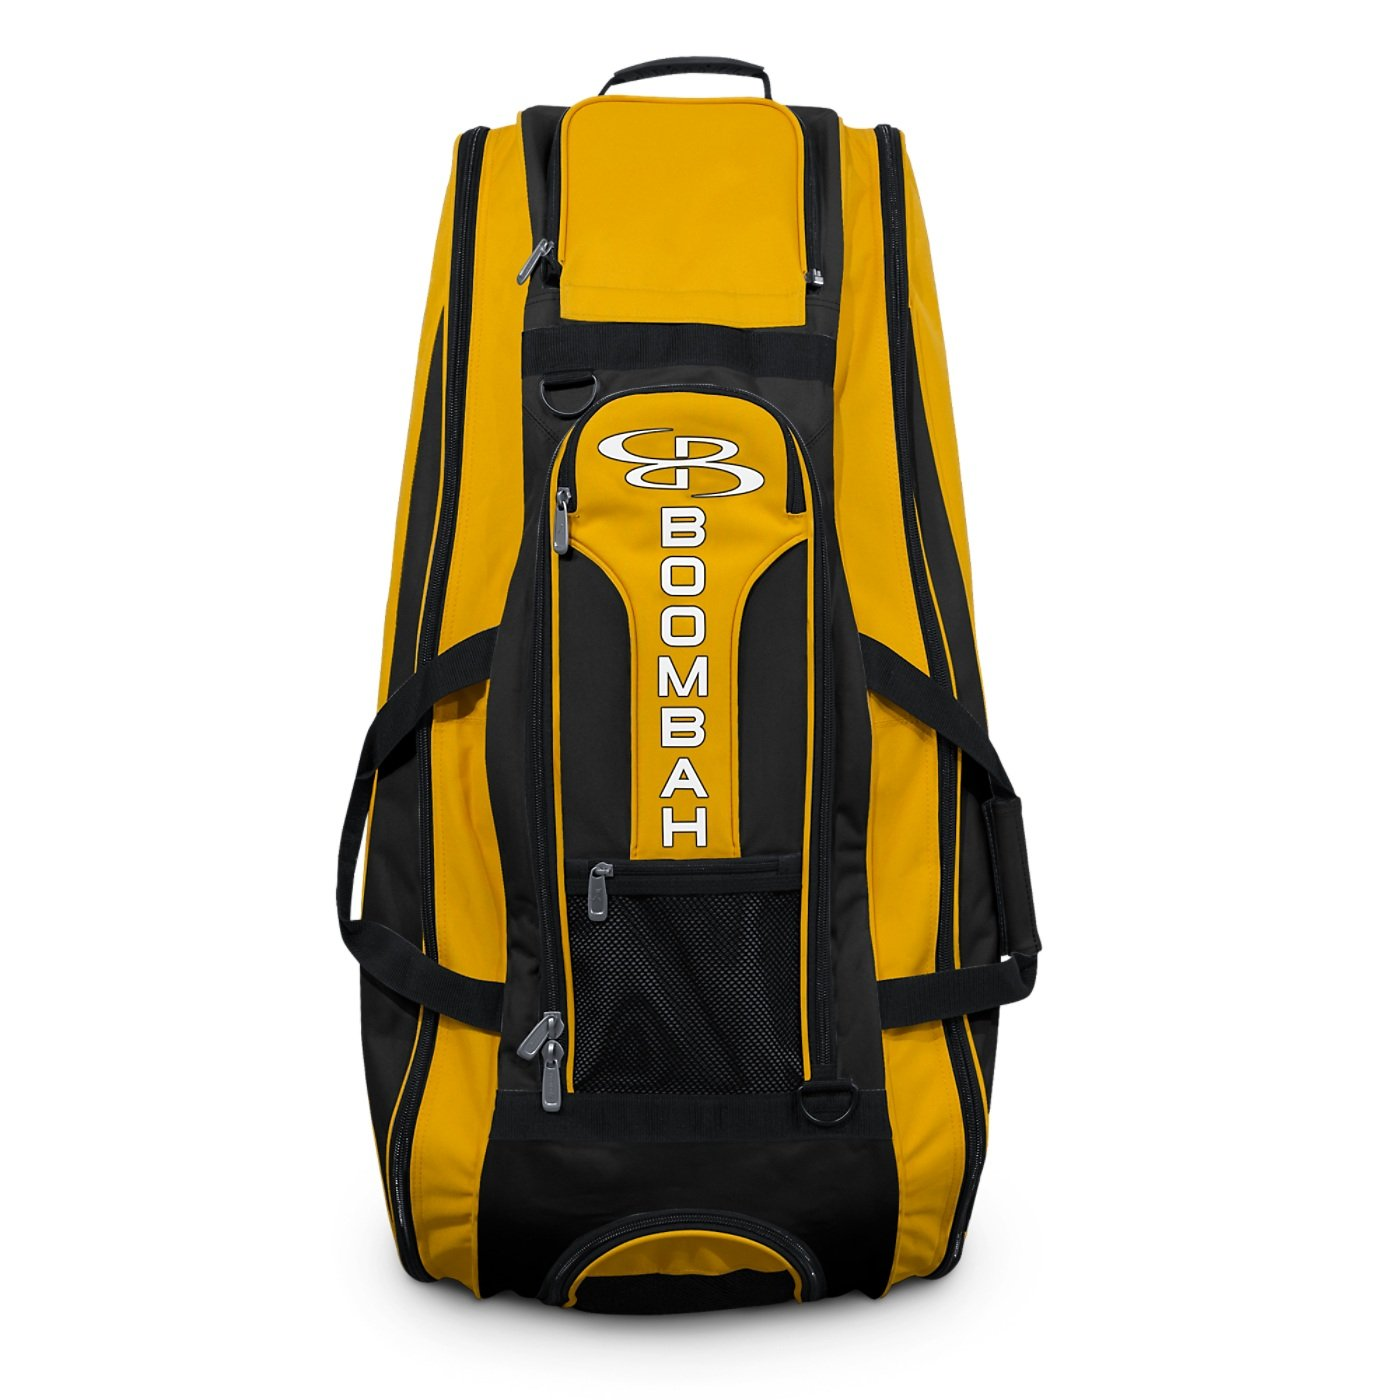 Boombah Beast Baseball/Softball Bat Bag - 40'' x 14'' x 13'' - Black/Gold - Holds 8 Bats, Glove & Shoe Compartments by Boombah (Image #3)